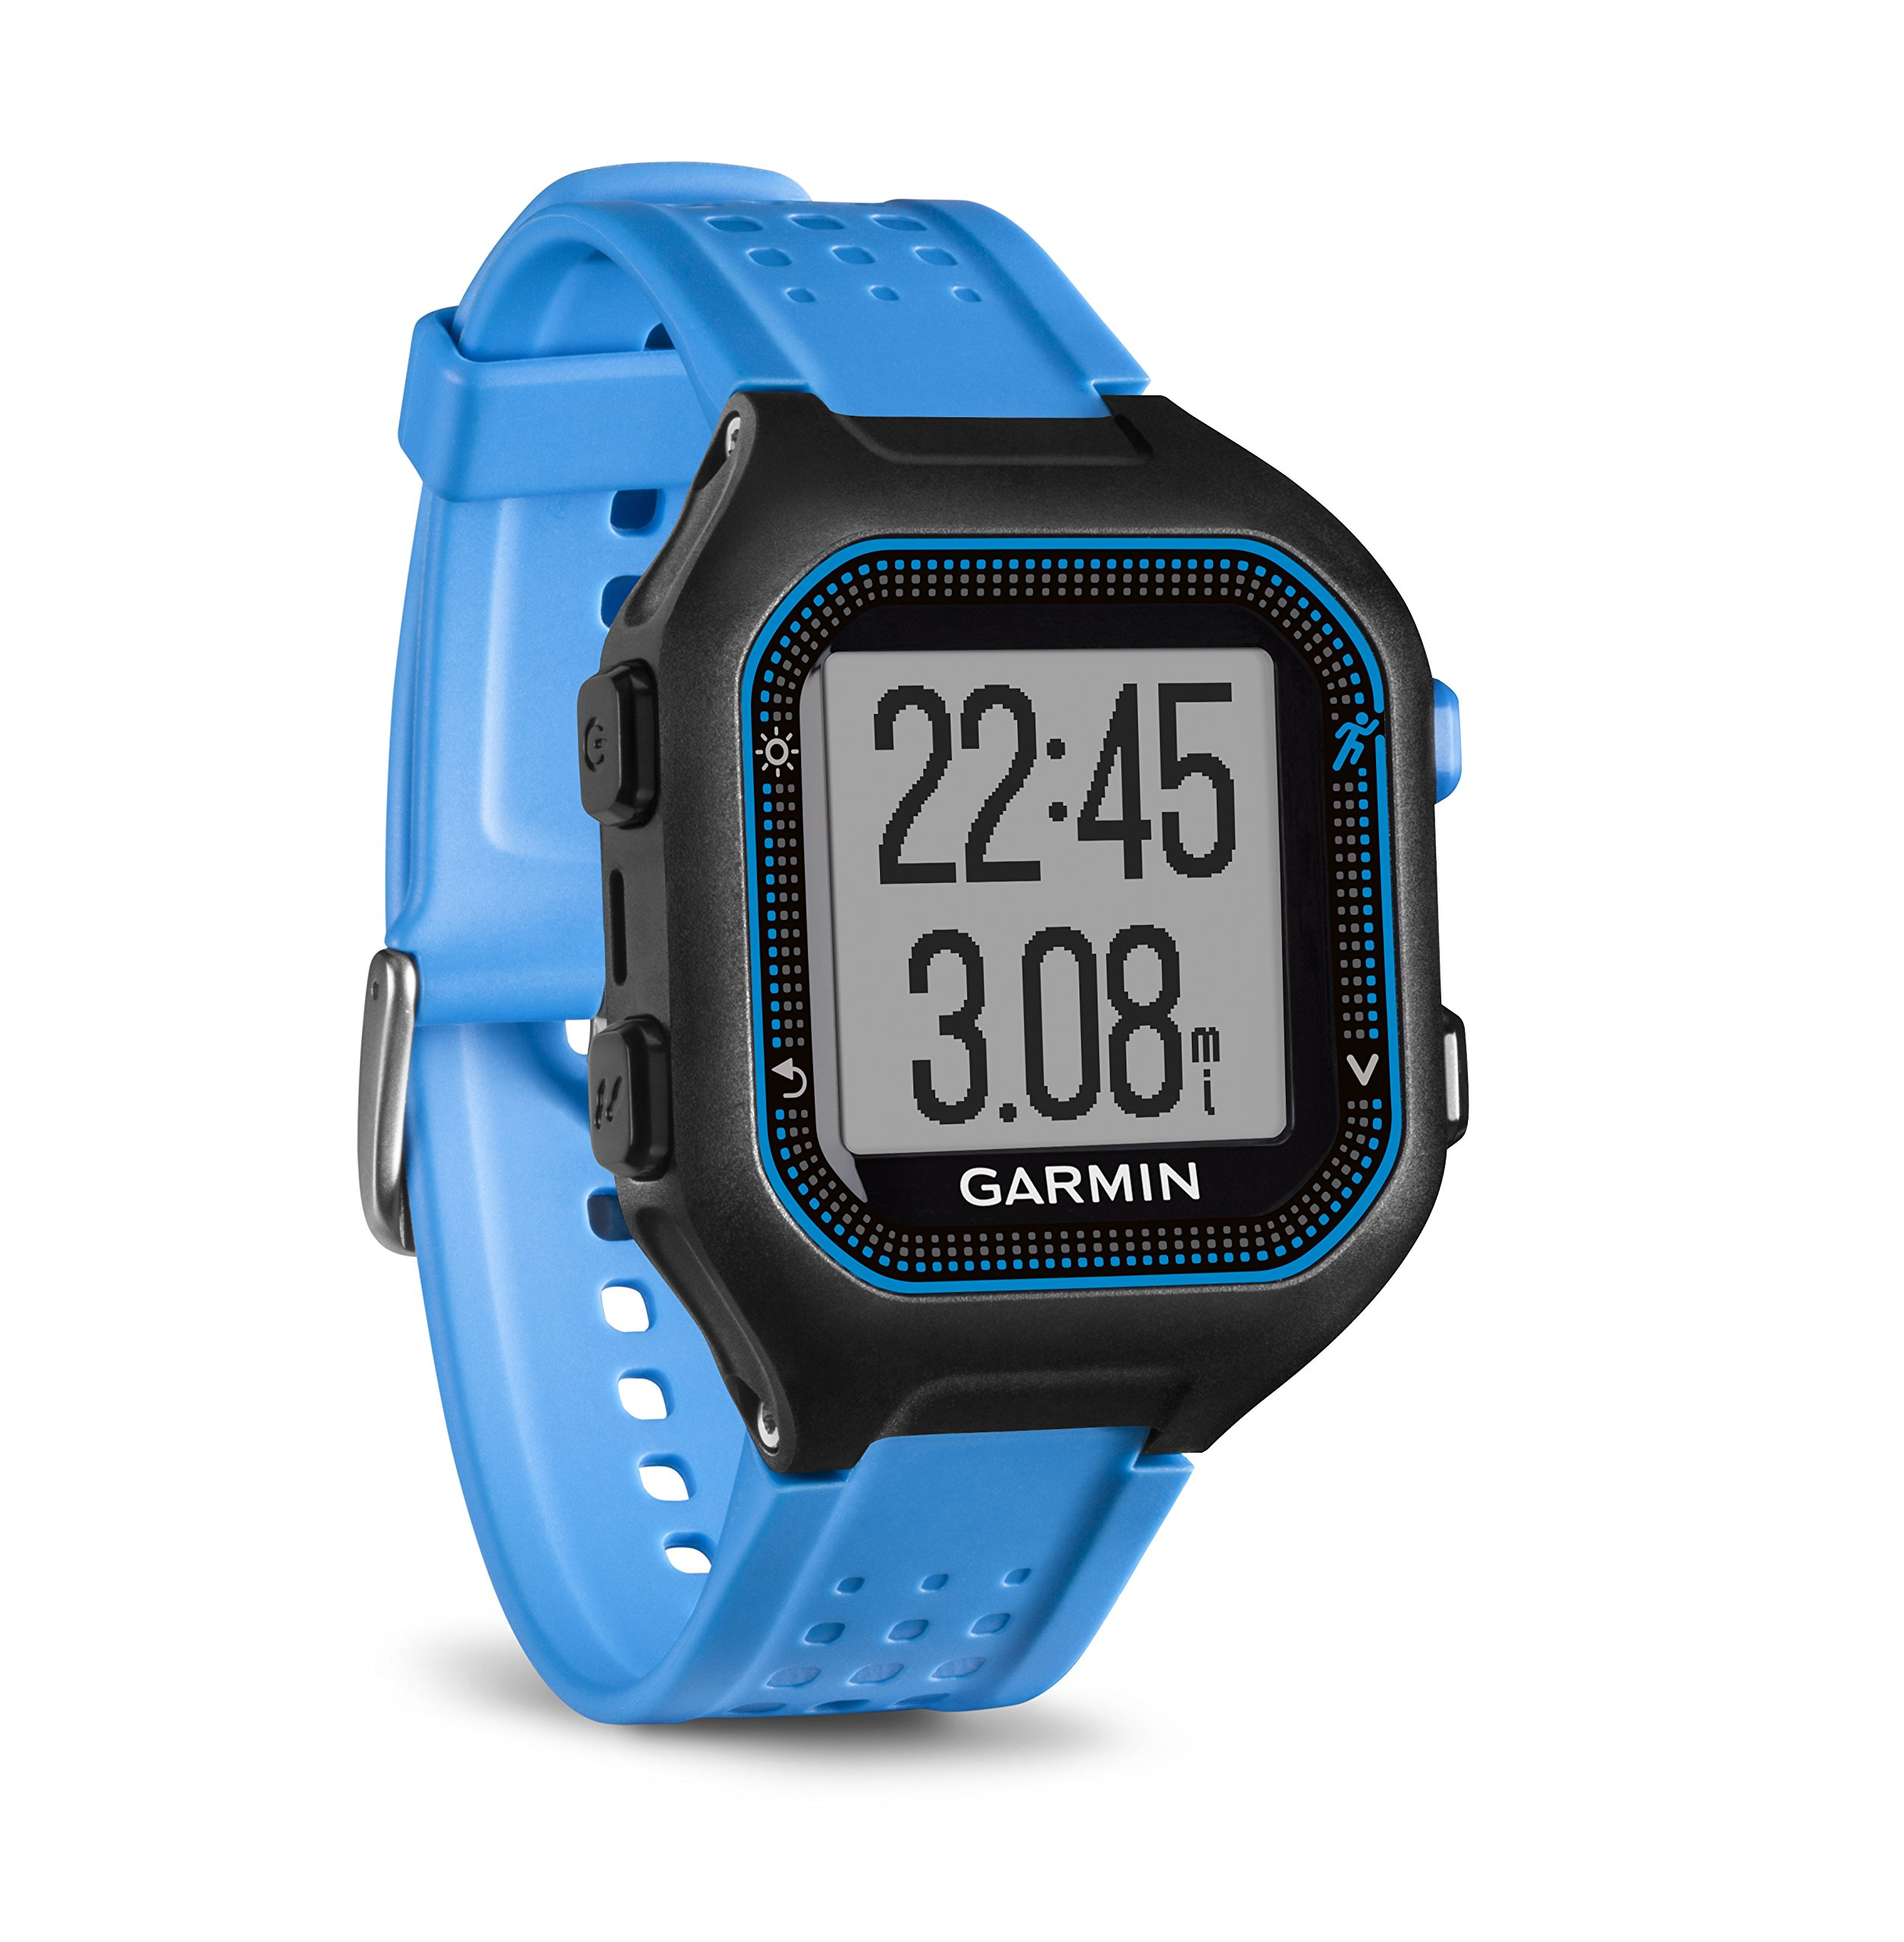 Garmin Forerunner 25 (Large) - Black and Blue by Garmin